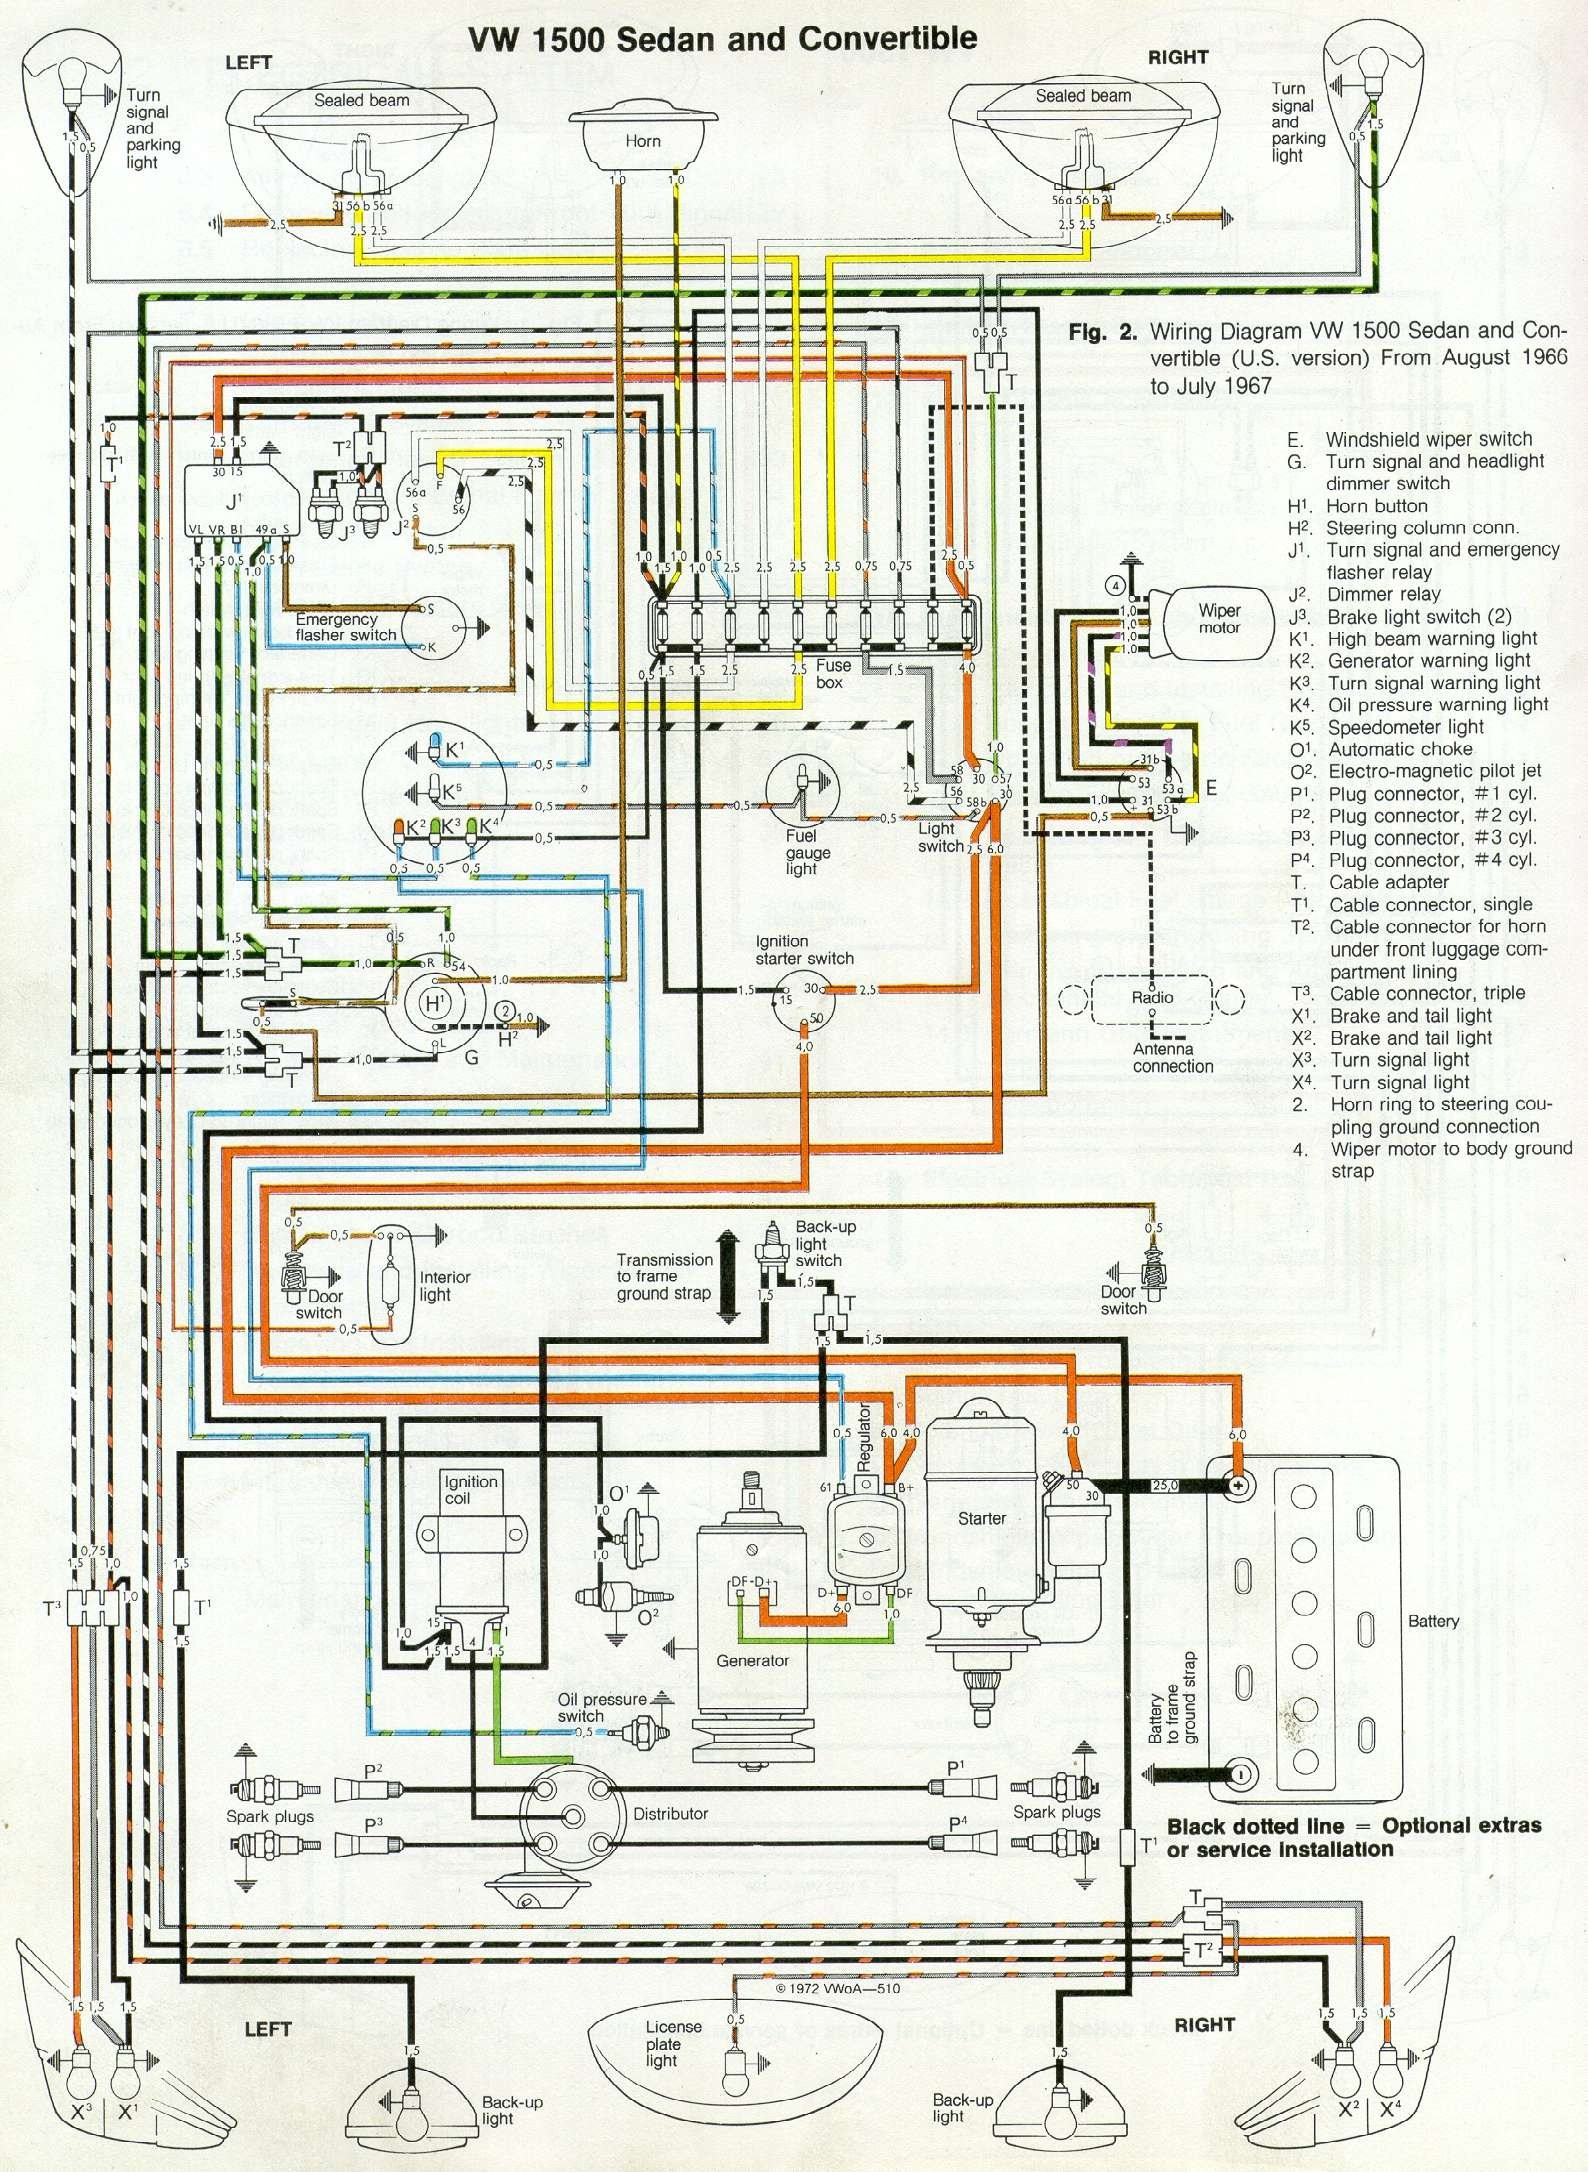 VW Beetle Wiring Digram 67 beetle wiring diagram u s version 1967 vw beetle vw wiring diagram at gsmportal.co